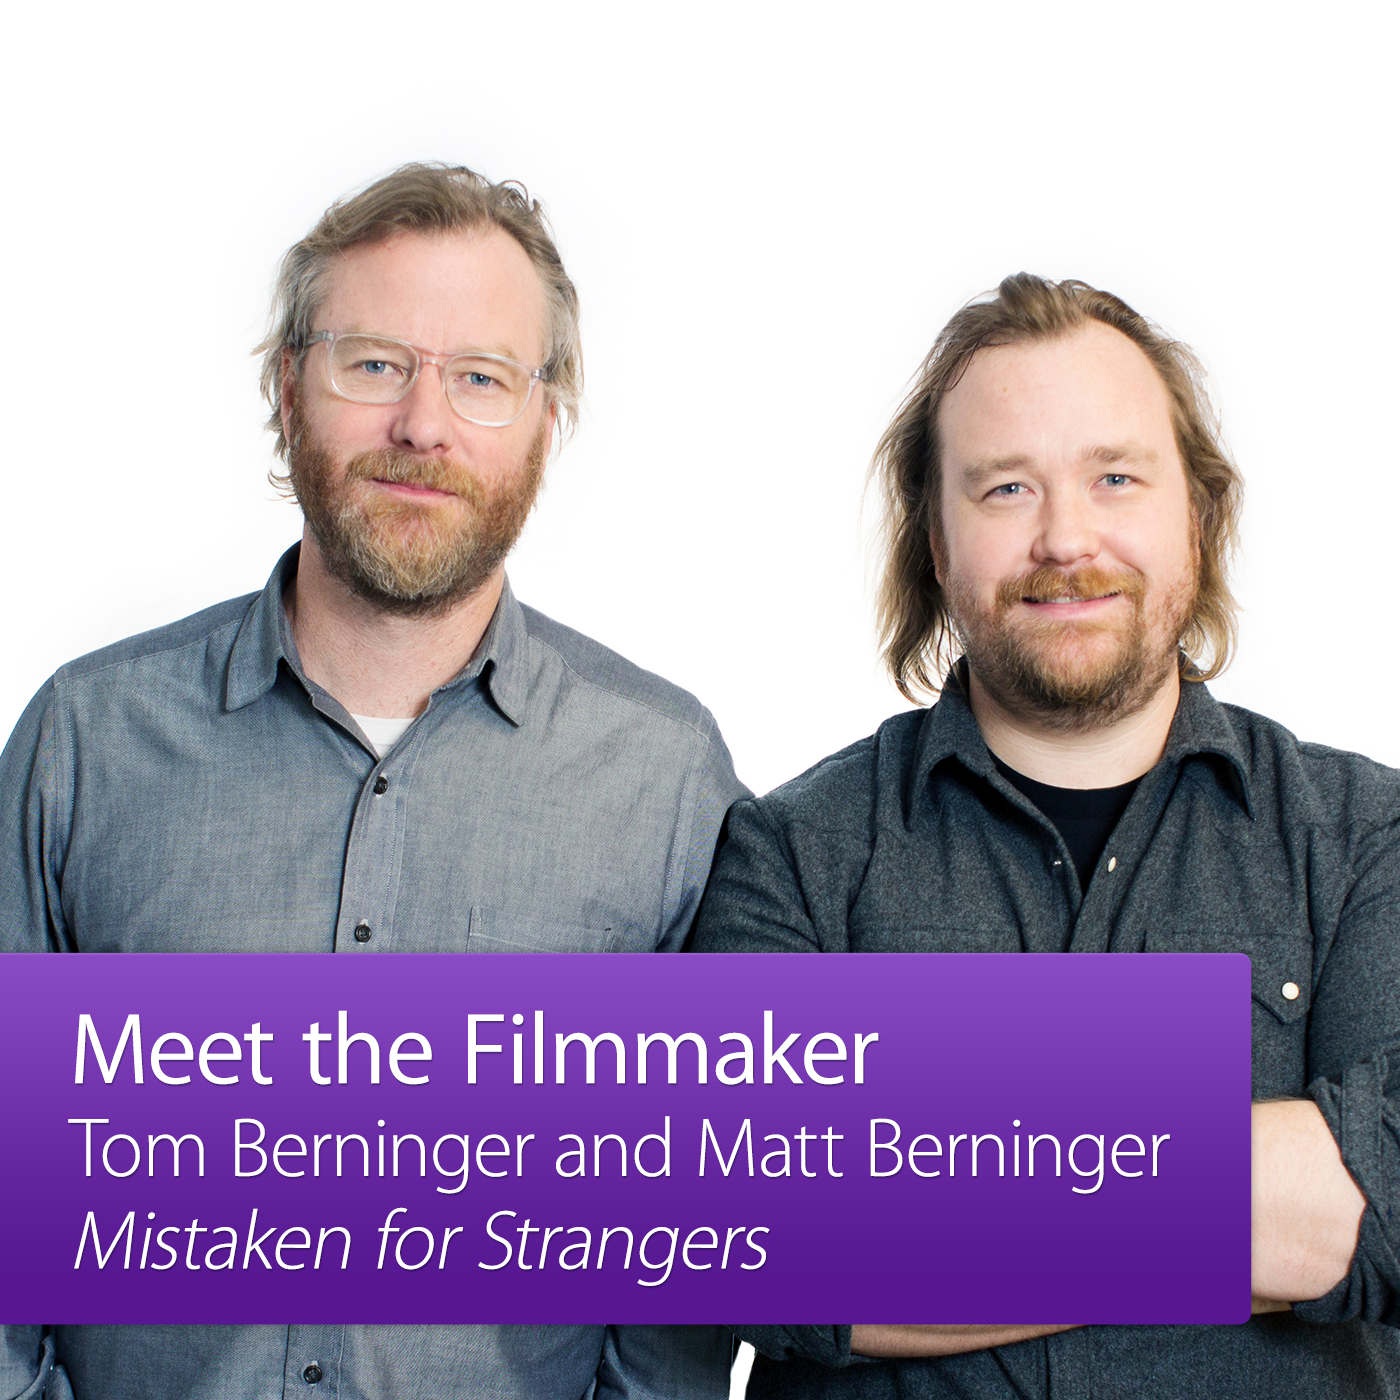 Tom Berninger and Matt Berninger: Meet the Filmmaker